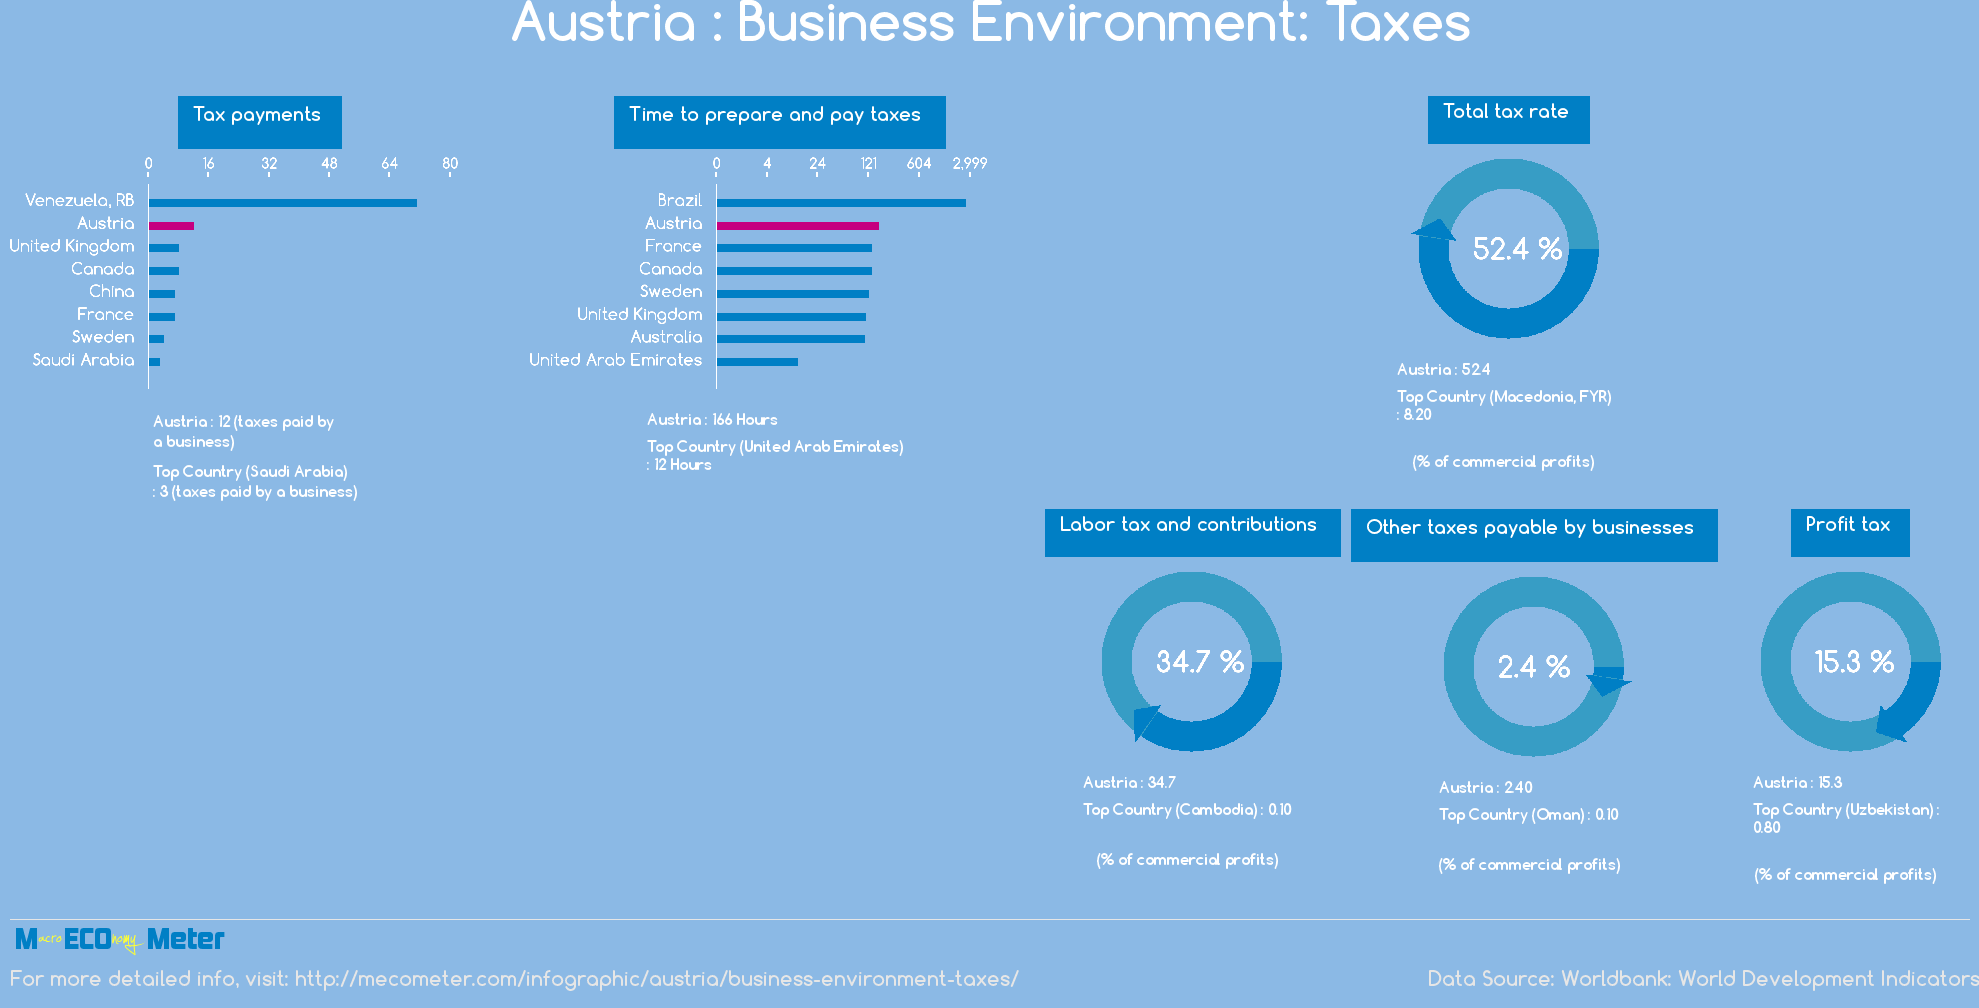 Austria : Business Environment: Taxes